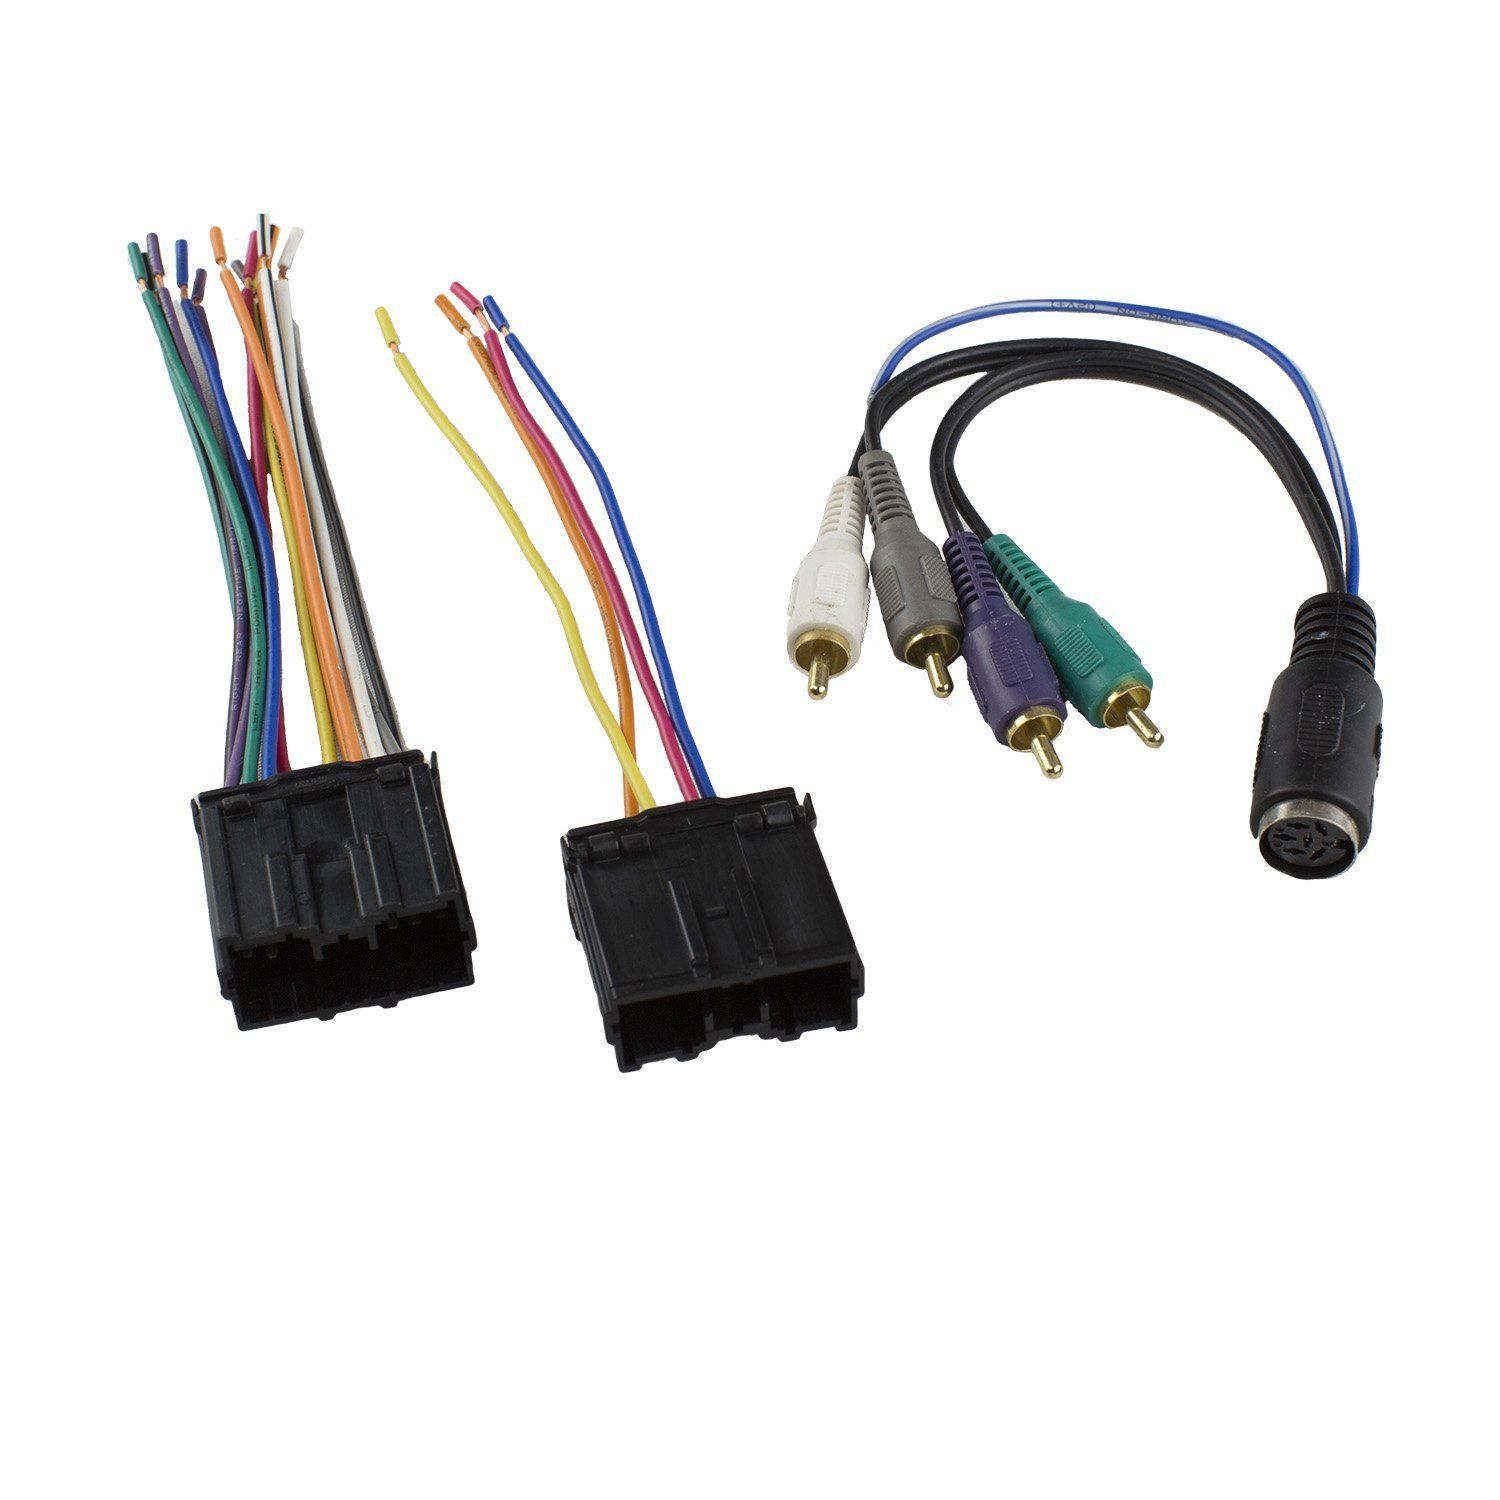 small resolution of novosonics mif 7004 wiring harness for mitsubishi 4 speaker with amp integration 1994 2007 fits existing connector in your vehicle no cutting existing